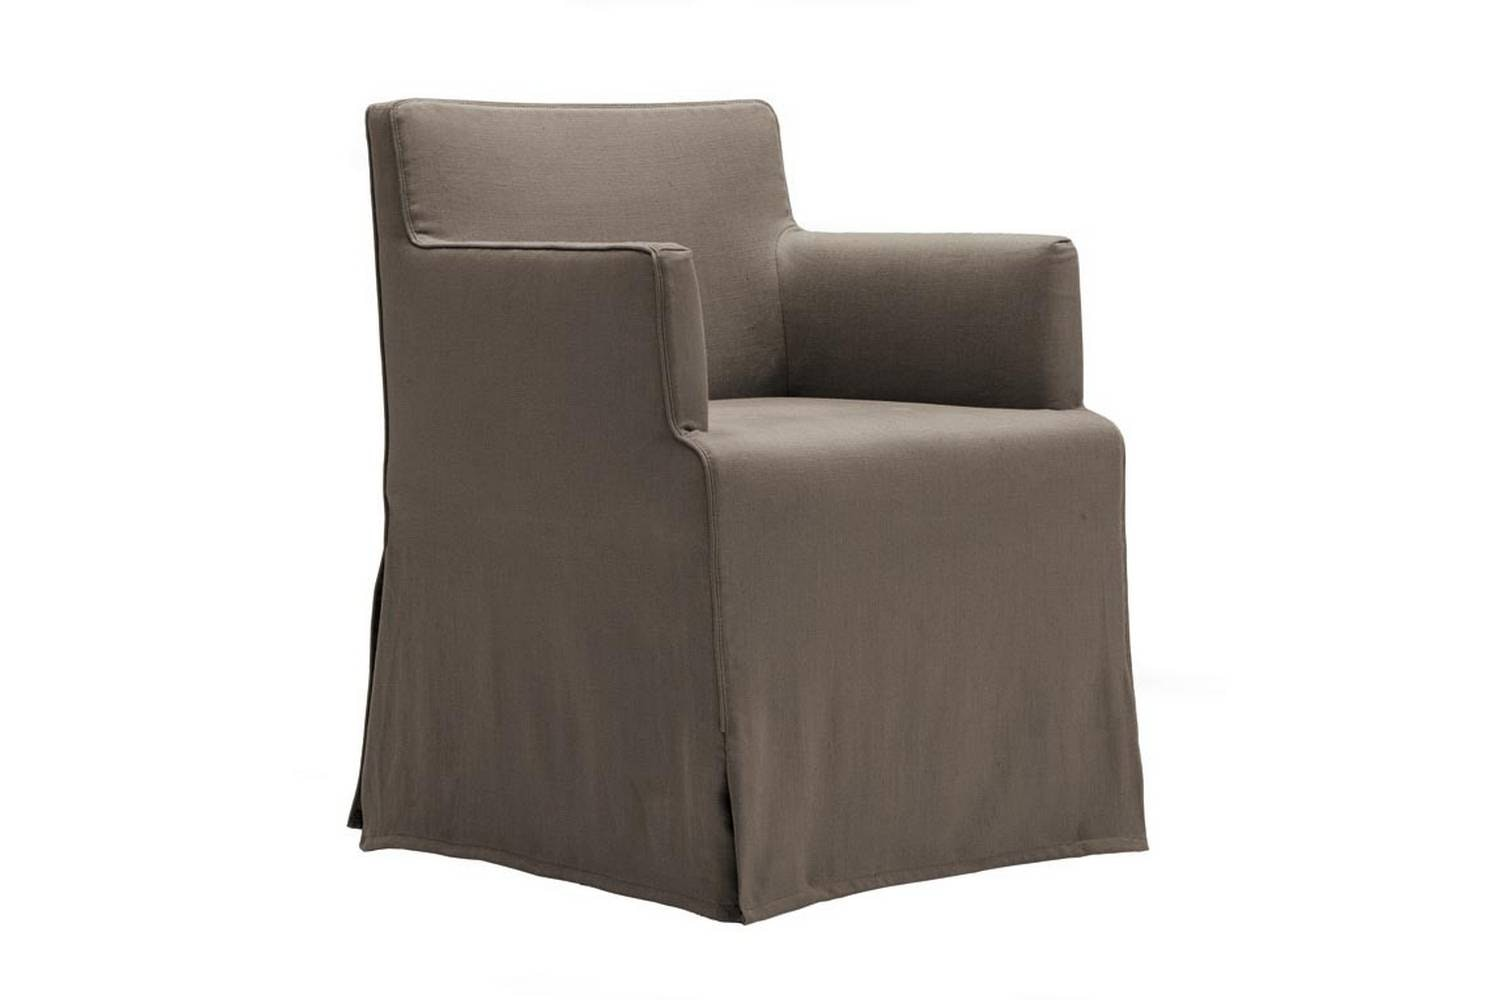 Velvet Due Chair with Arms by CR&S Poliform for Poliform